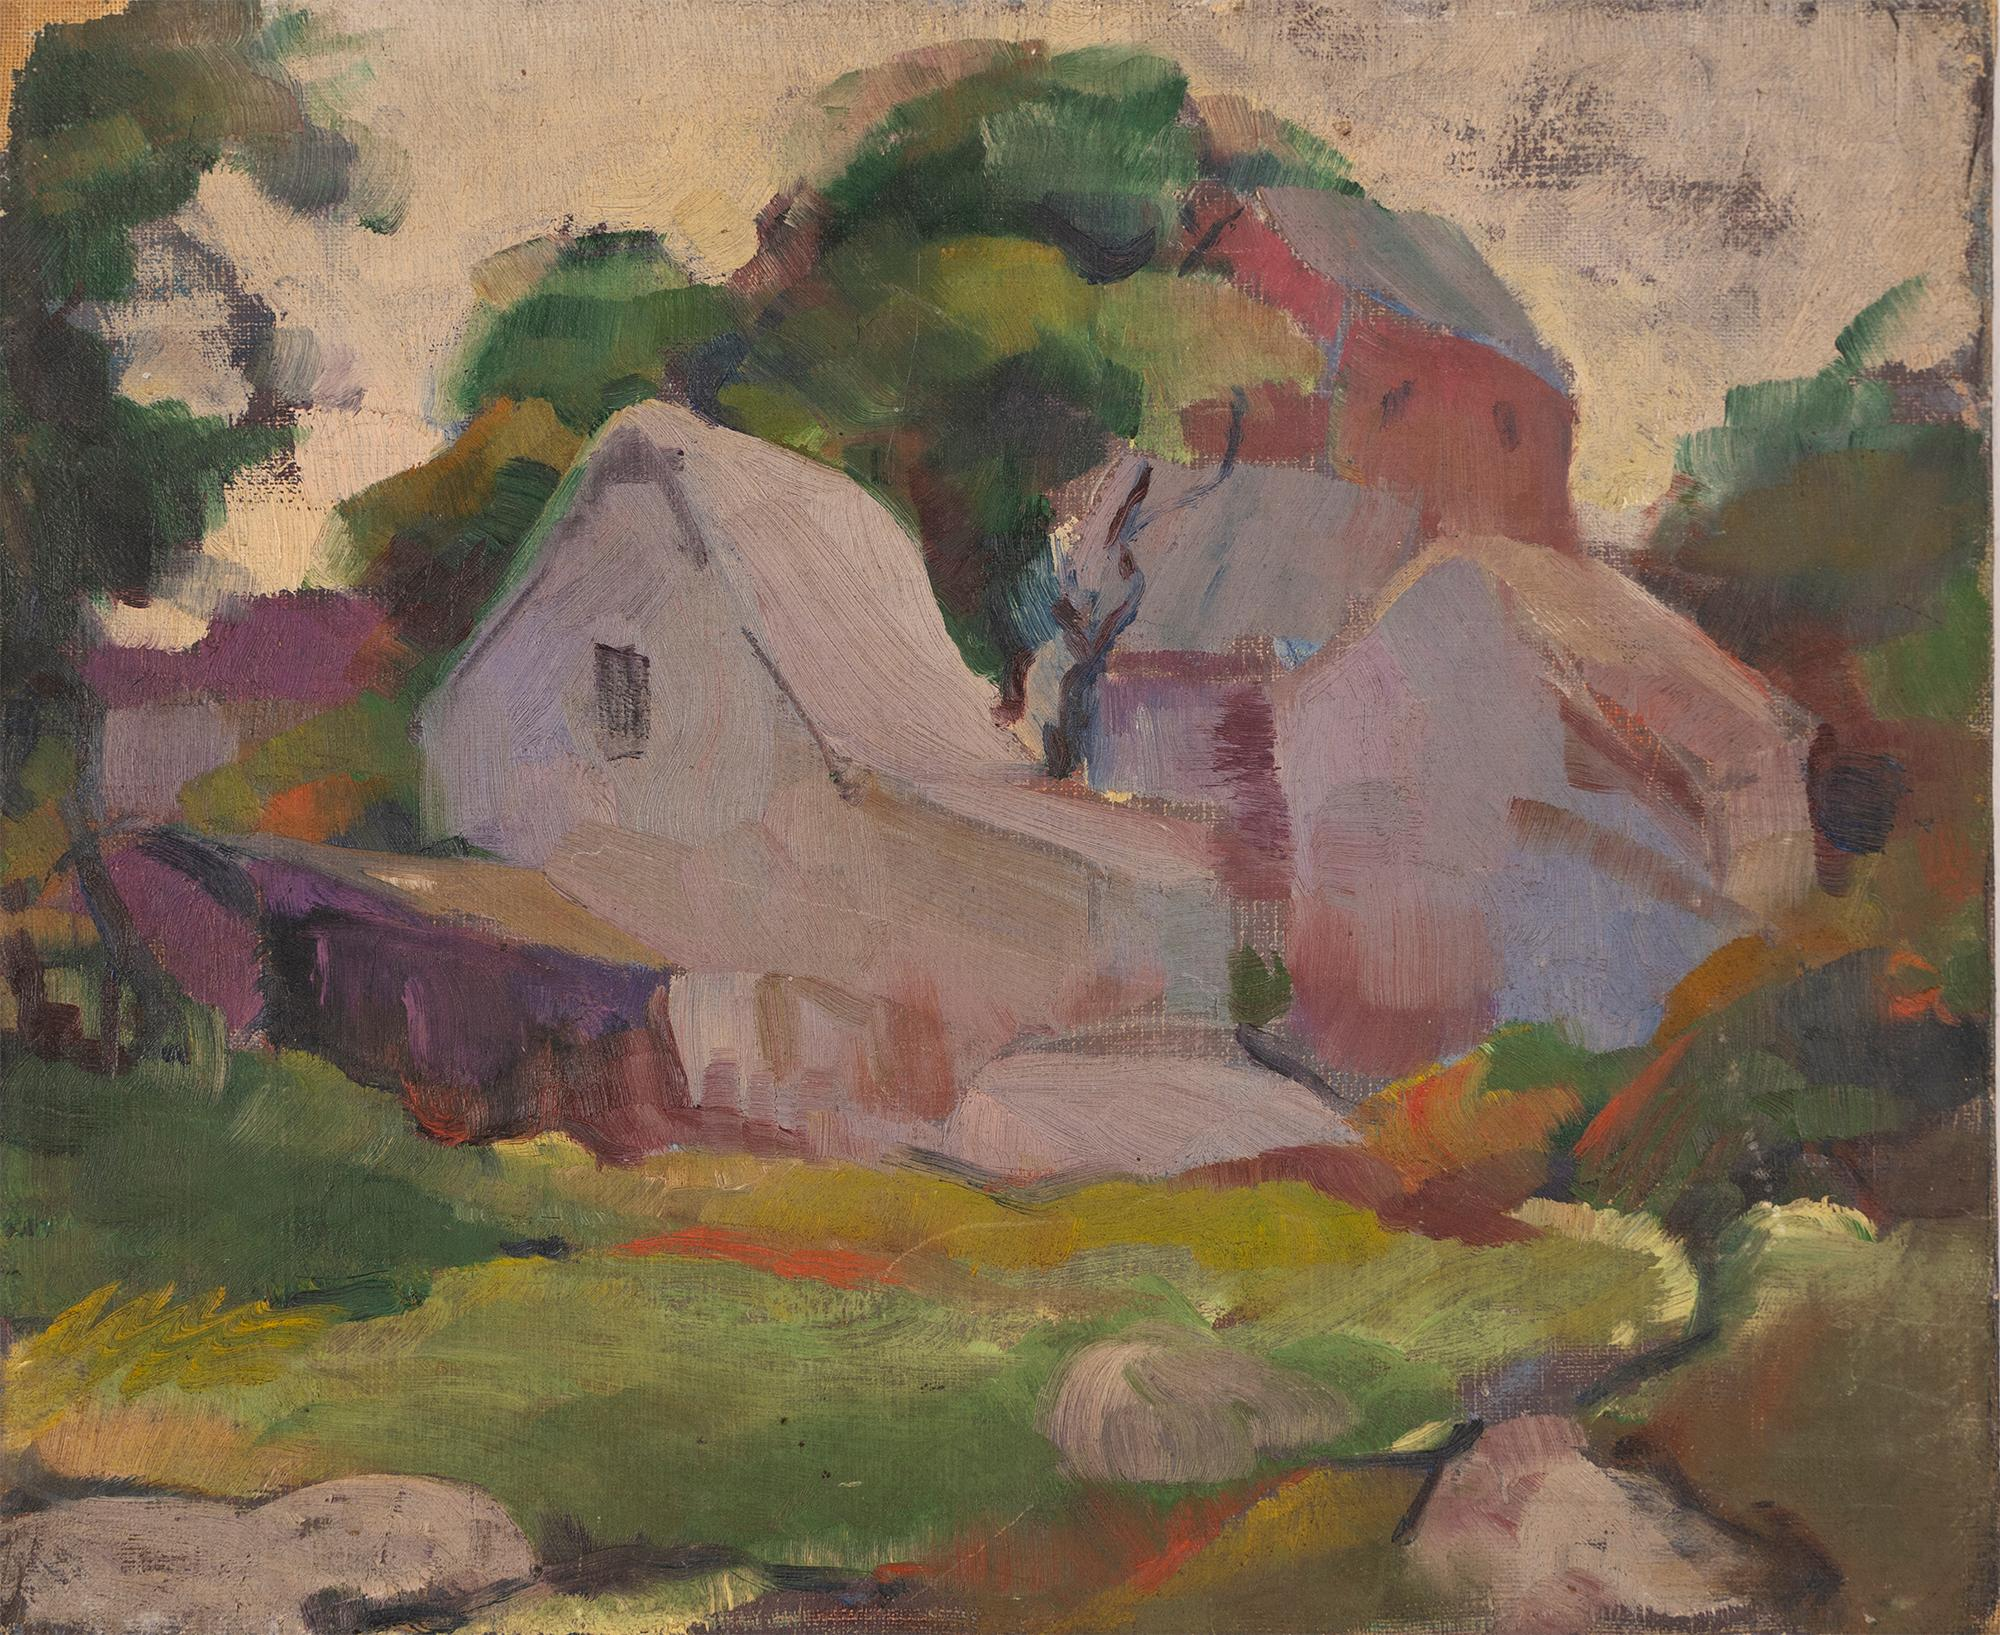 Antique American Modernist New England Fauvist Landscape Oil Painting